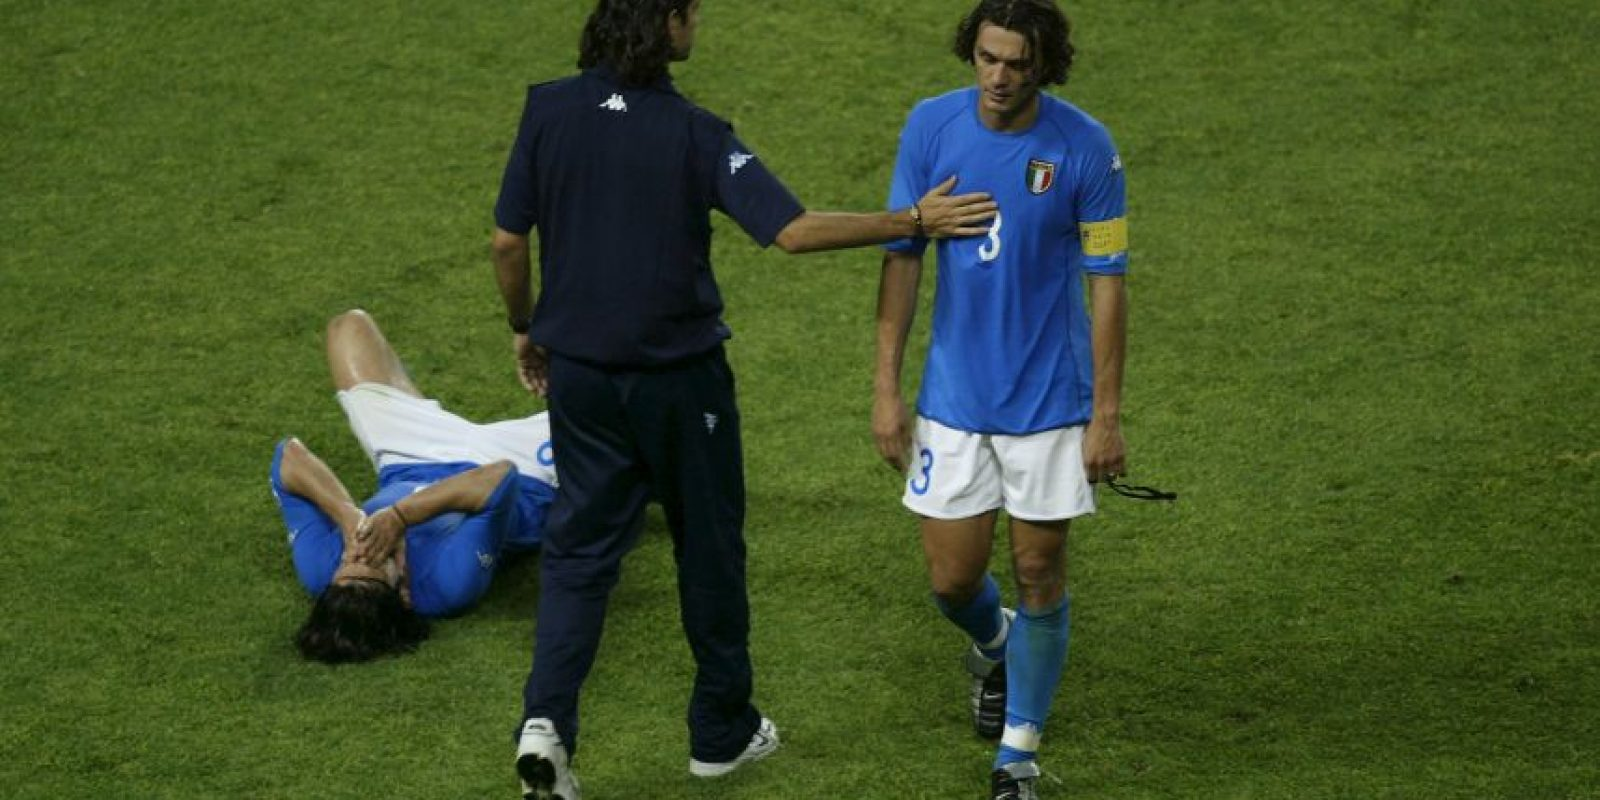 Paolo Maldini (Italia) Foto: Getty Images